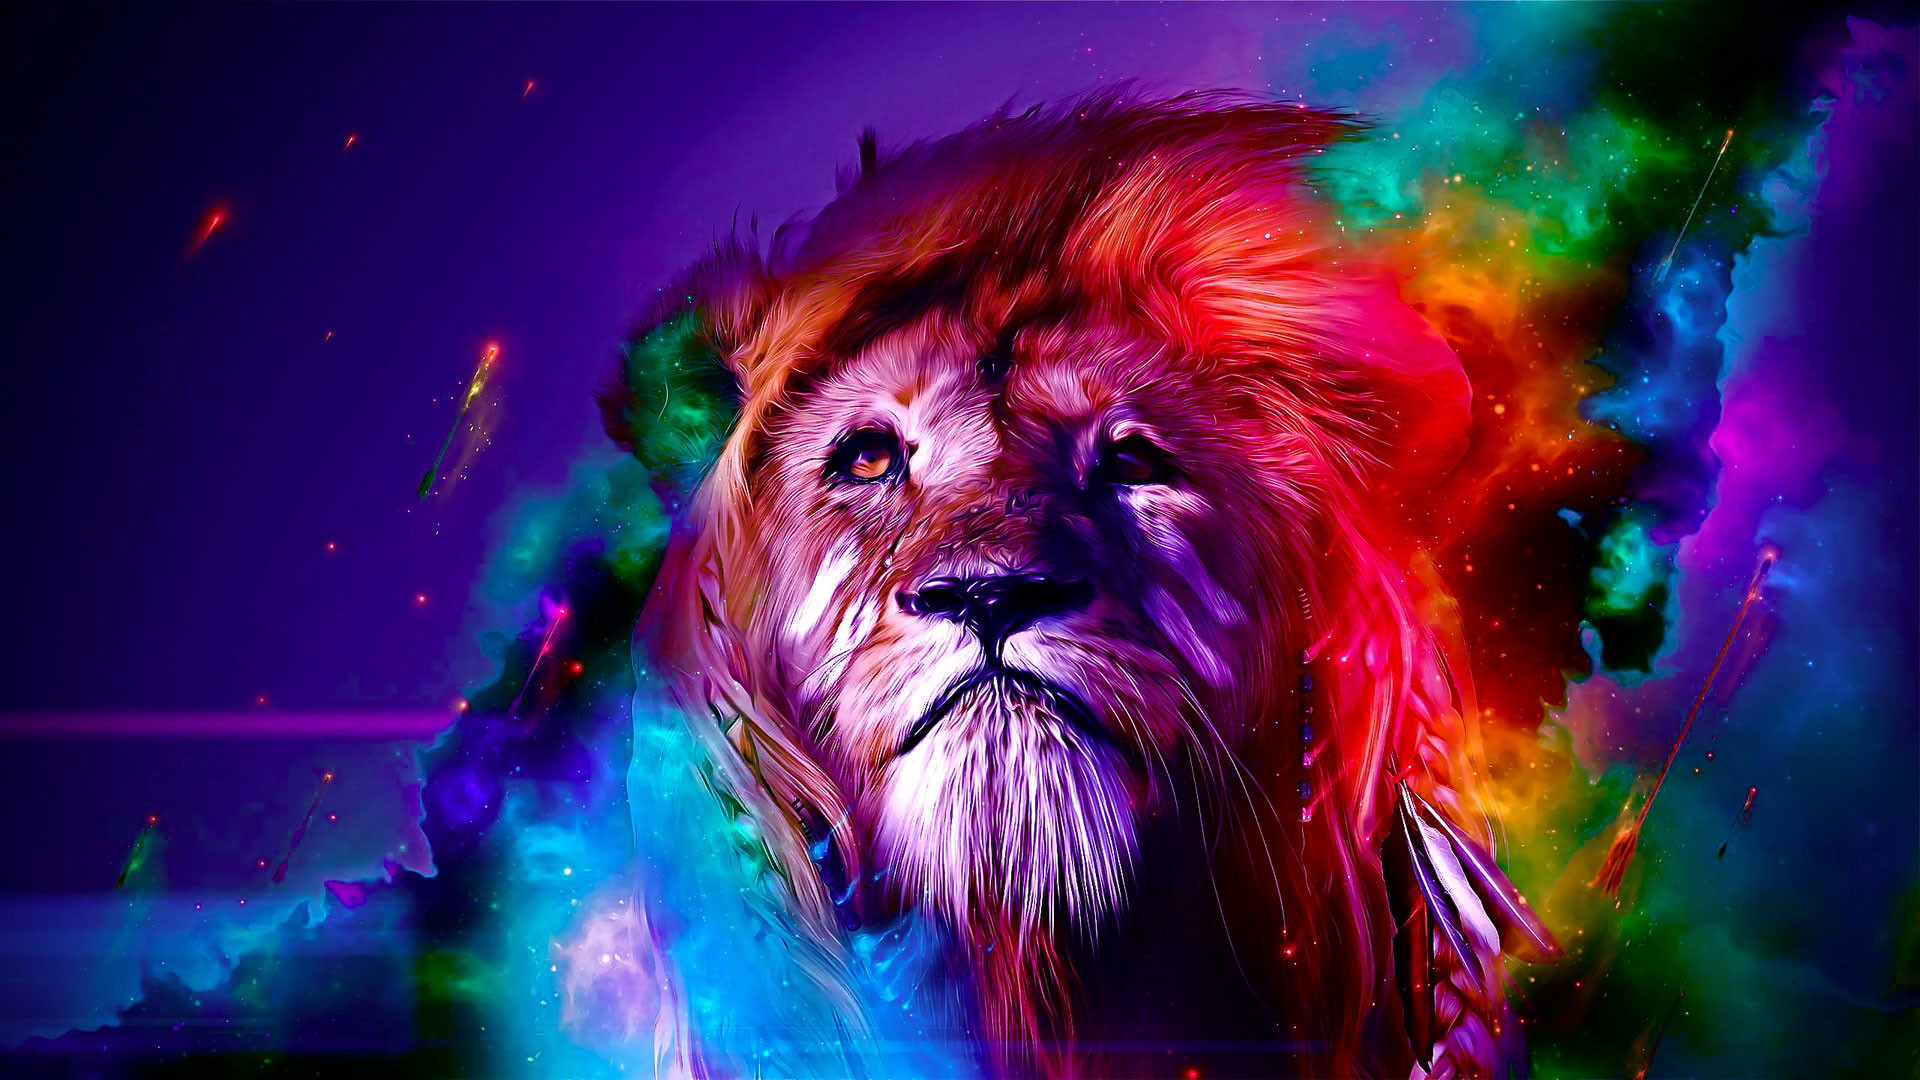 Rainbow Lion Wallpaper 57 Images